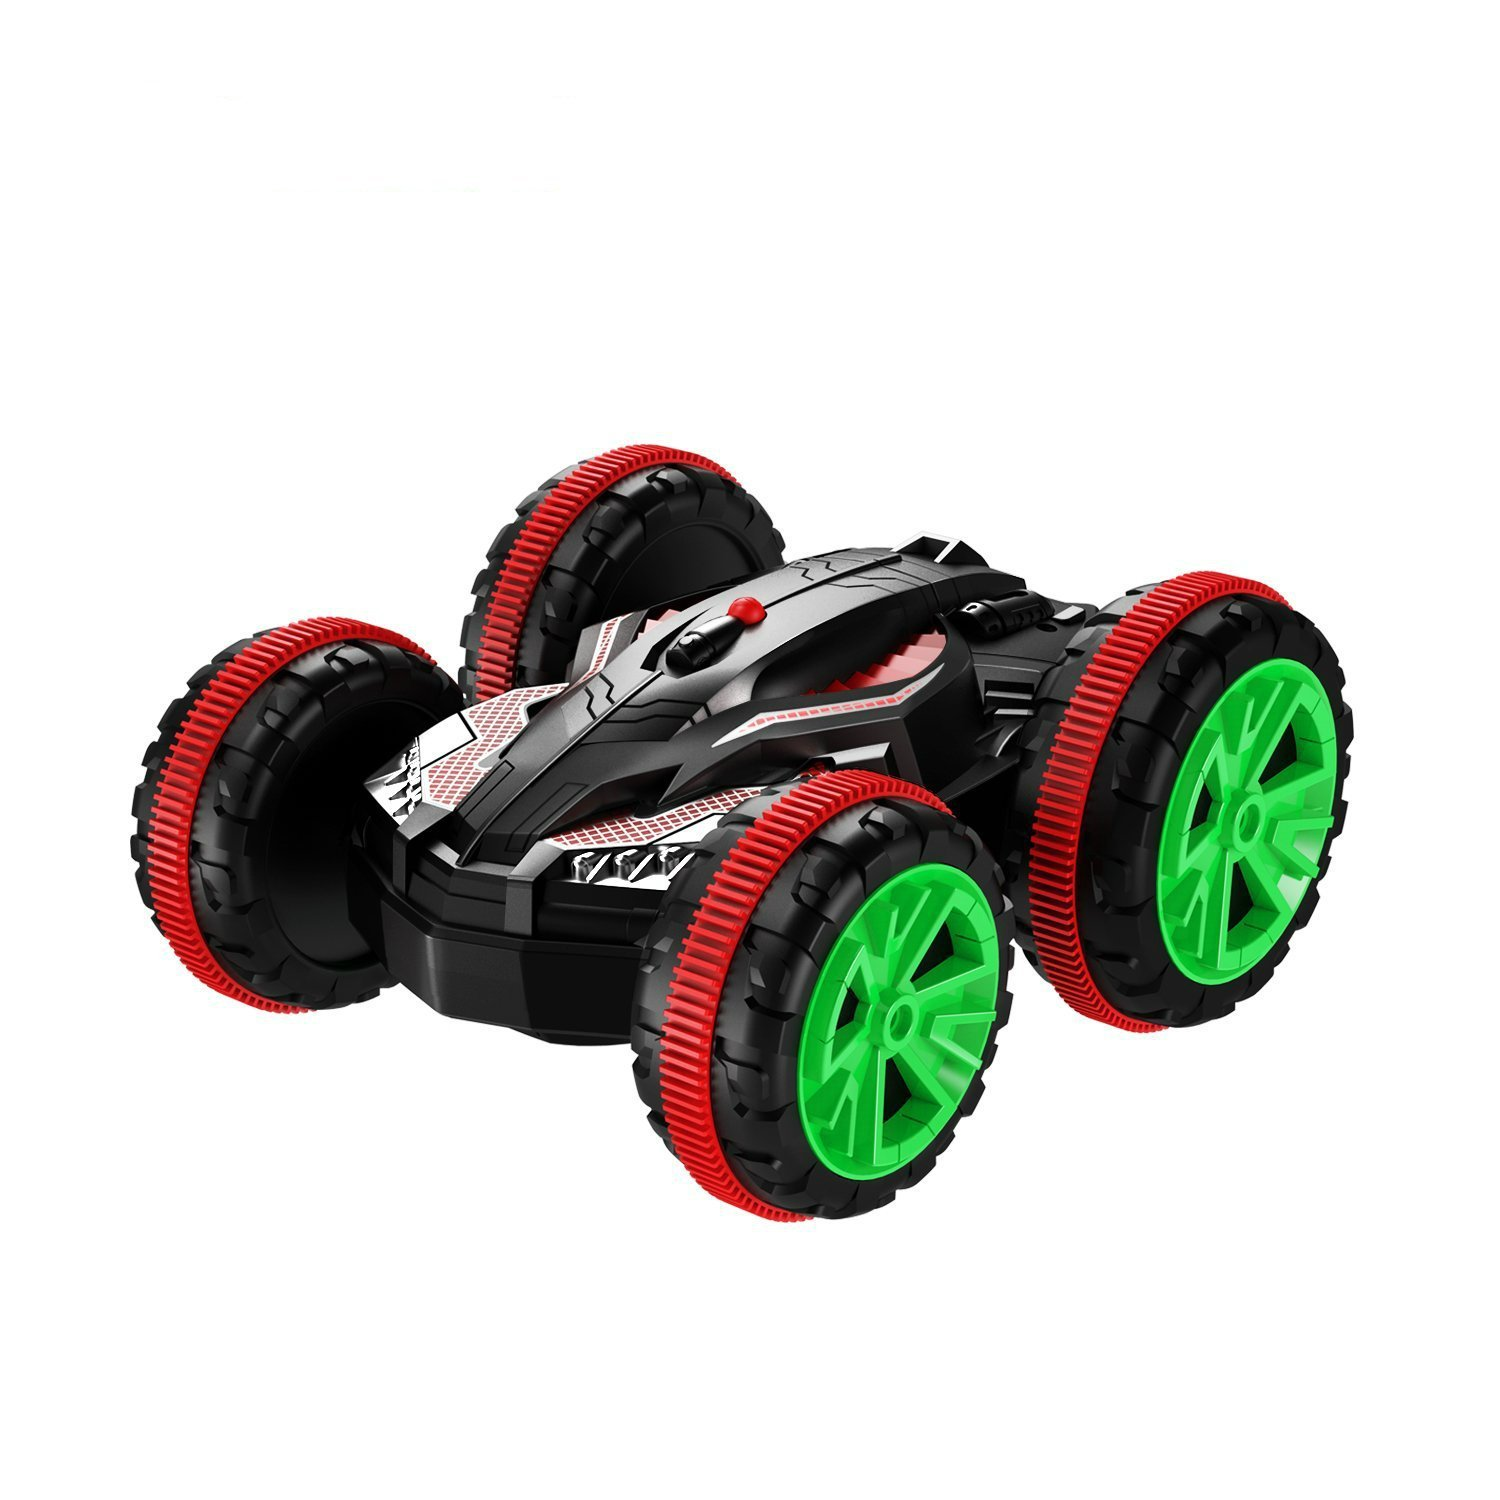 EBOYU(TM) Stunt Car 2.4Ghz 4WD RC Car Boat 6CH Remote Control Amphibious Off Road Electric Race Double Sided Car Tank Vehicle